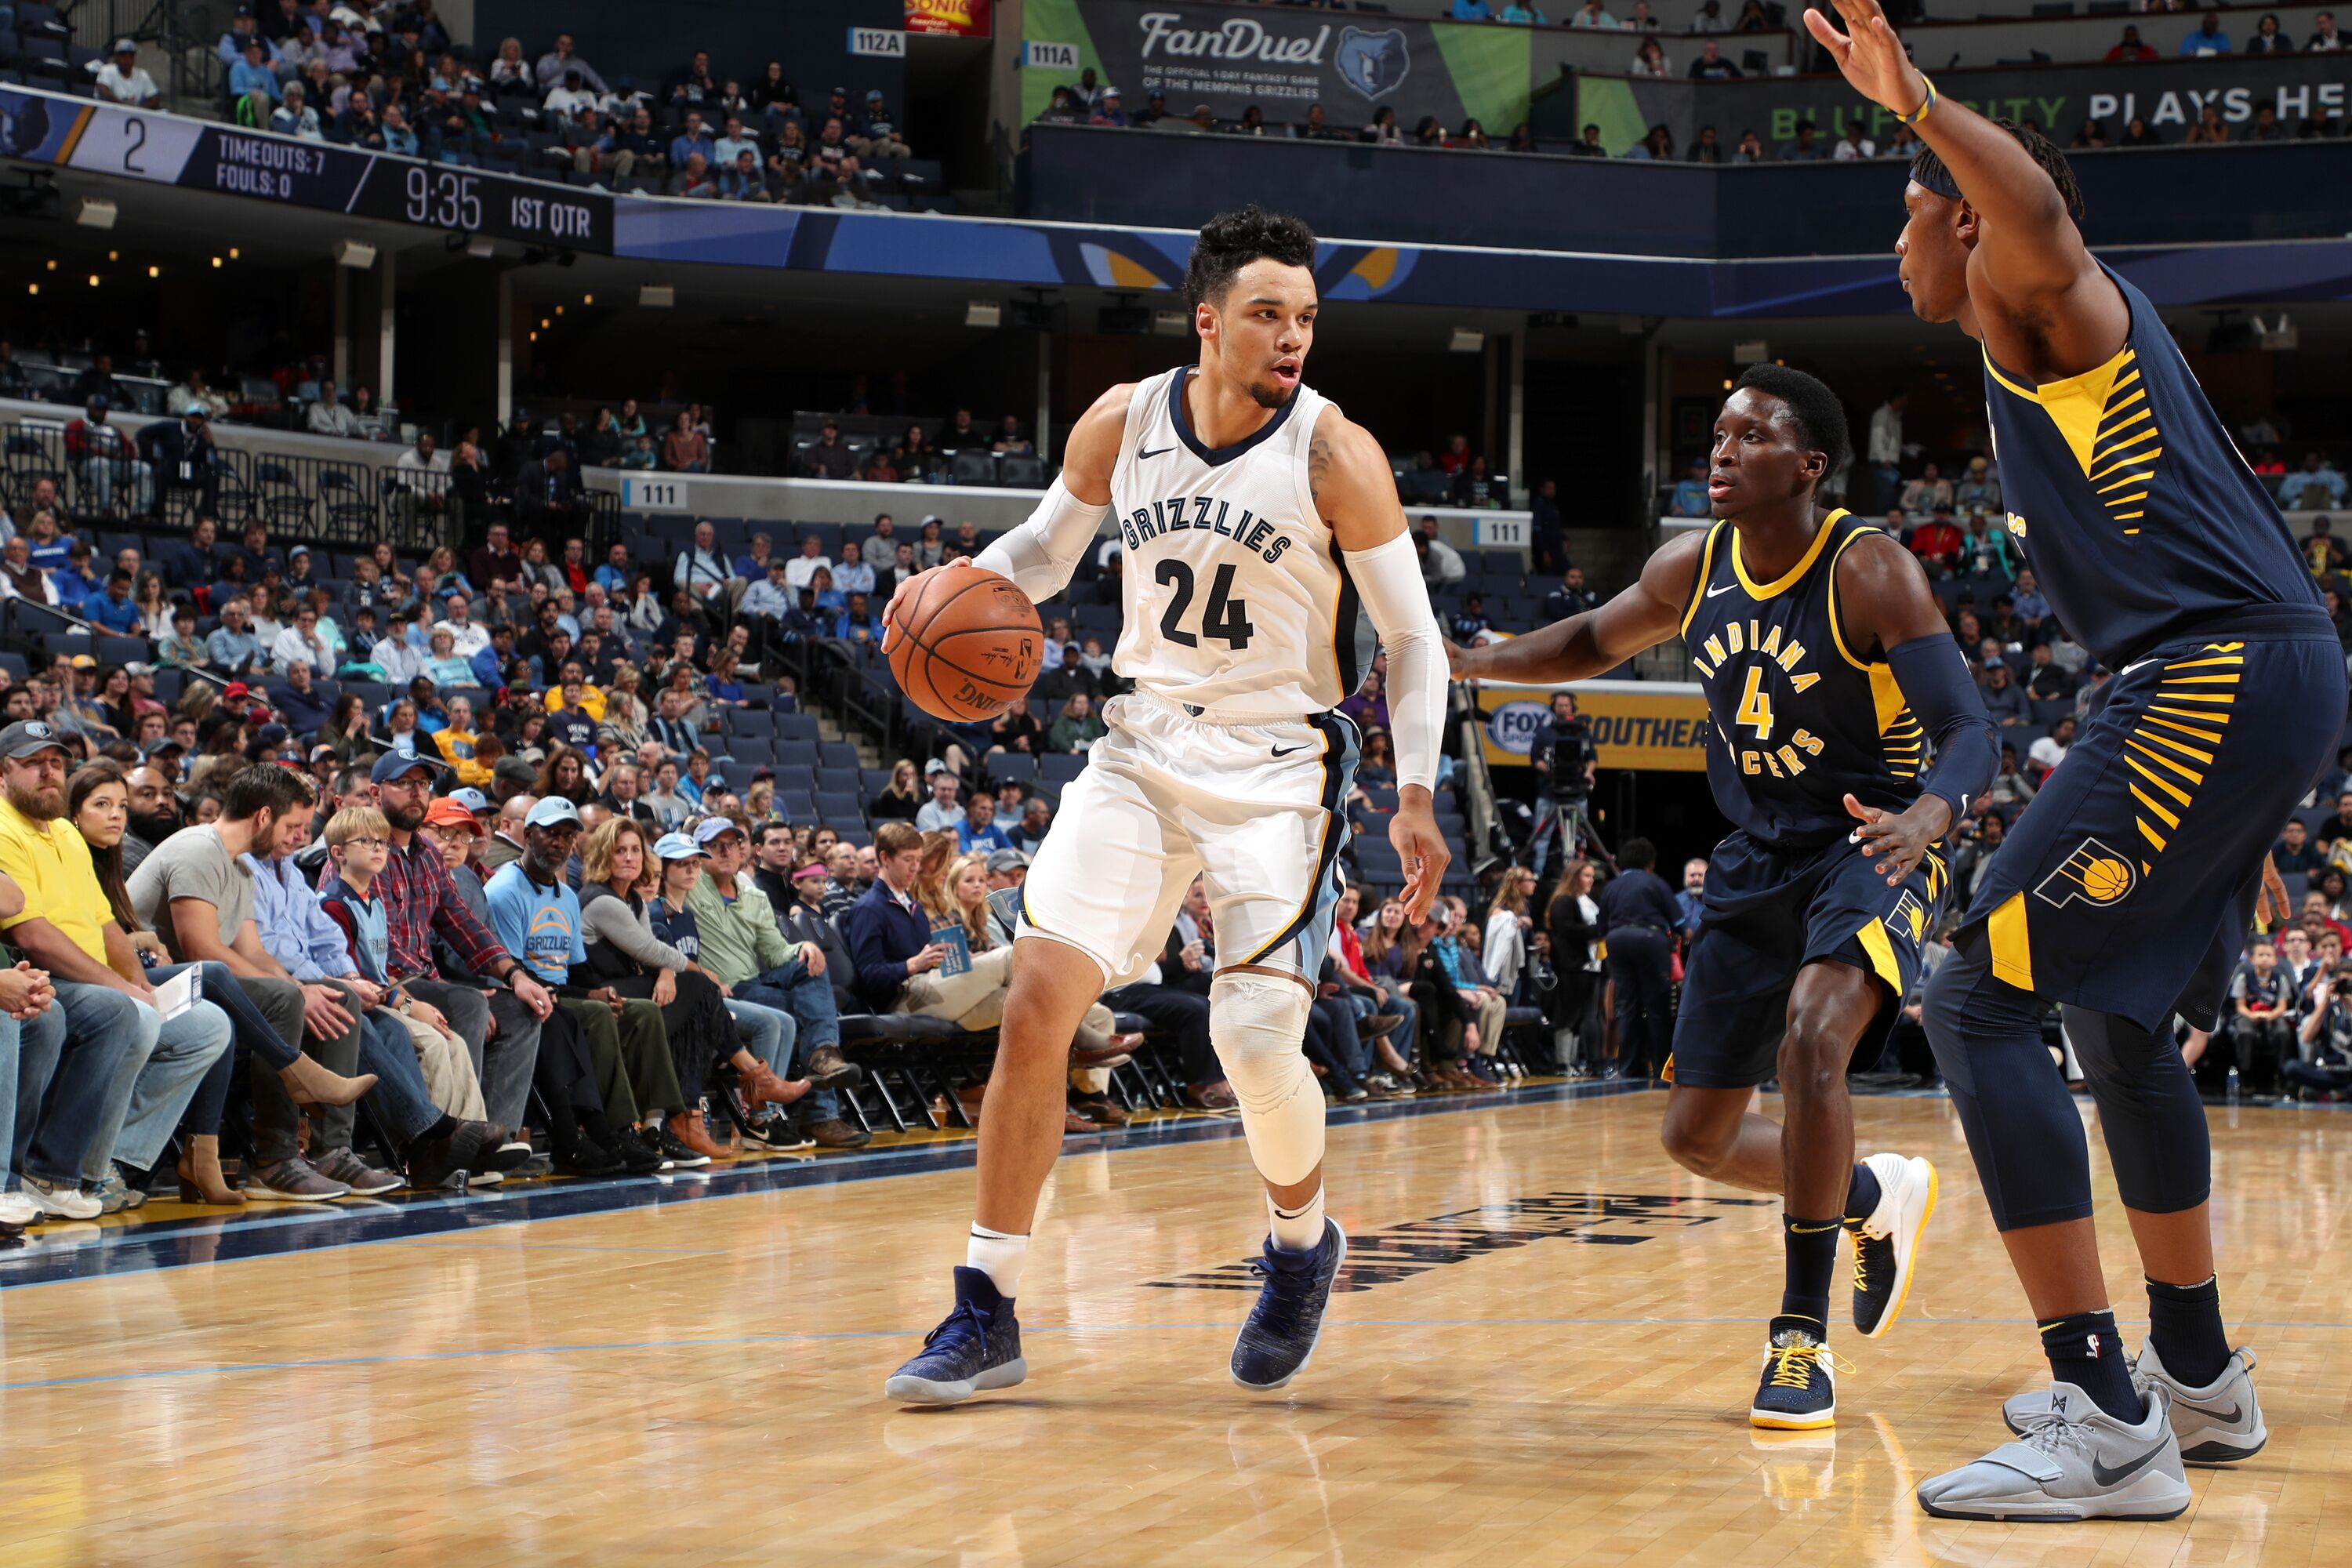 874695750-indiana-pacers-v-memphis-grizzlies.jpg